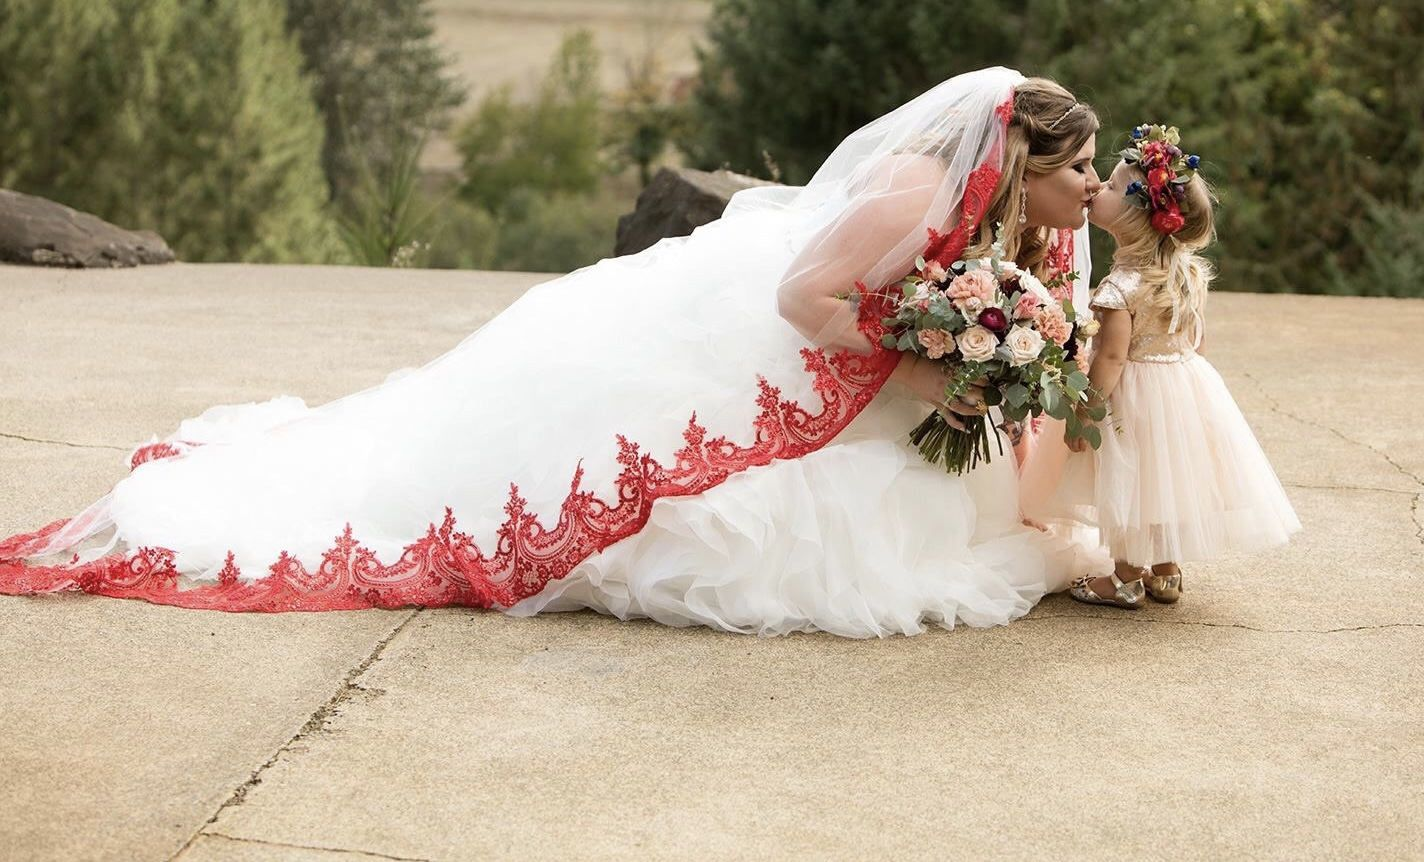 Red Lace Veil Cathedral Veil Red Sequined Lace Red Etsy Red And White Weddings Red Veil Wedding Veils Short [ 862 x 1424 Pixel ]